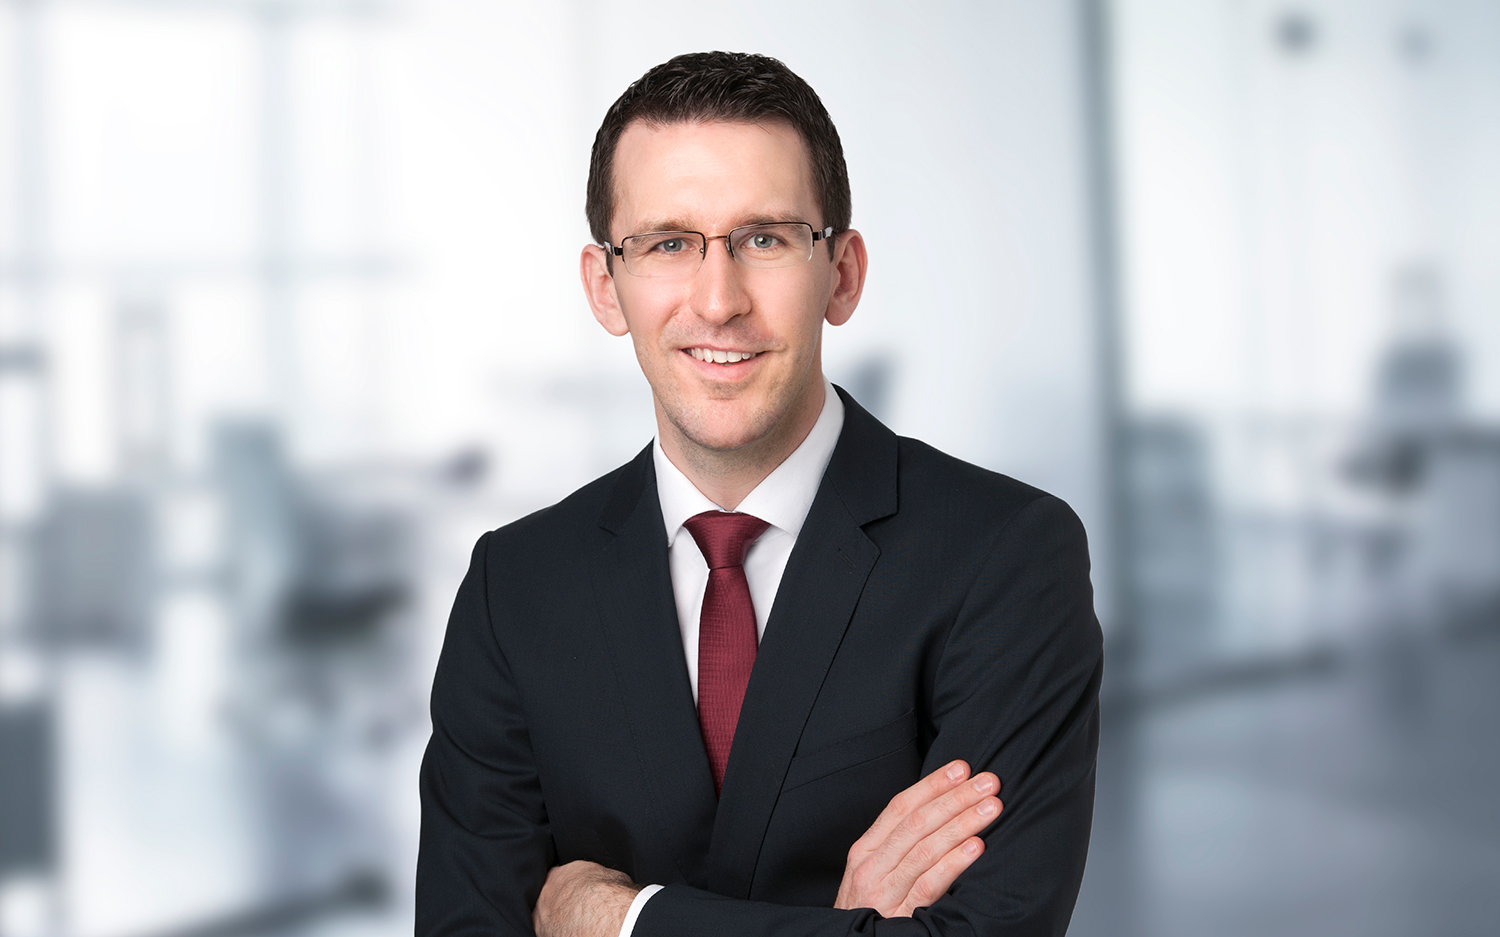 """Christian Fürst  Manager BSc Business Administration  Legal, compliance and tax topics are known as """"heavy weights"""" in today's value chain of banking. Christian has relevant hands-on expertise at disposal when it comes to analyzing, implementing and maintaining customized solutions to address these challenges. Not only from the bank's perspective, but throughout the client journey."""